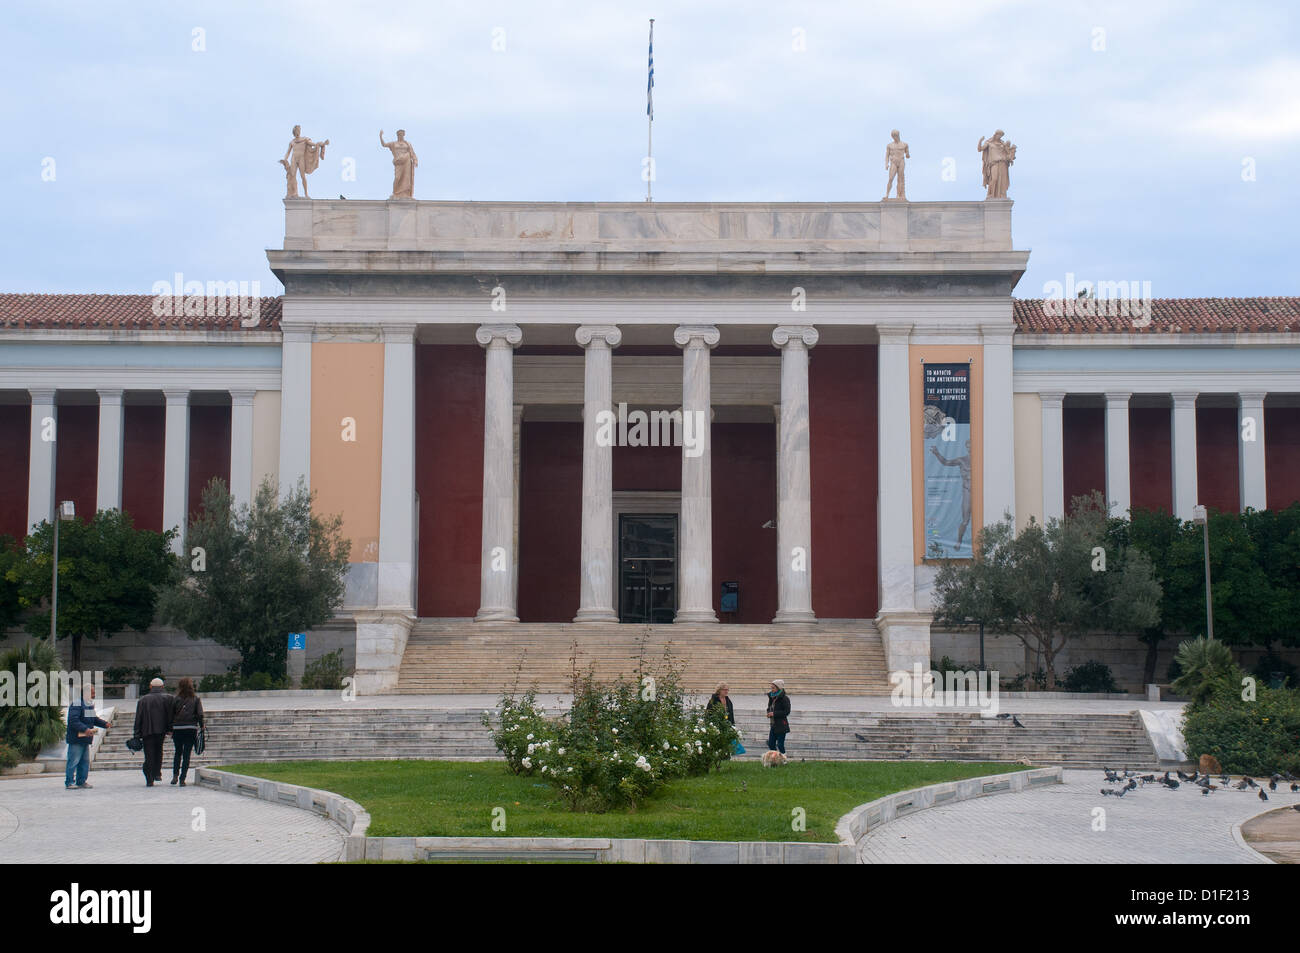 Greece, Athens, National Archaeology Museum - Stock Image